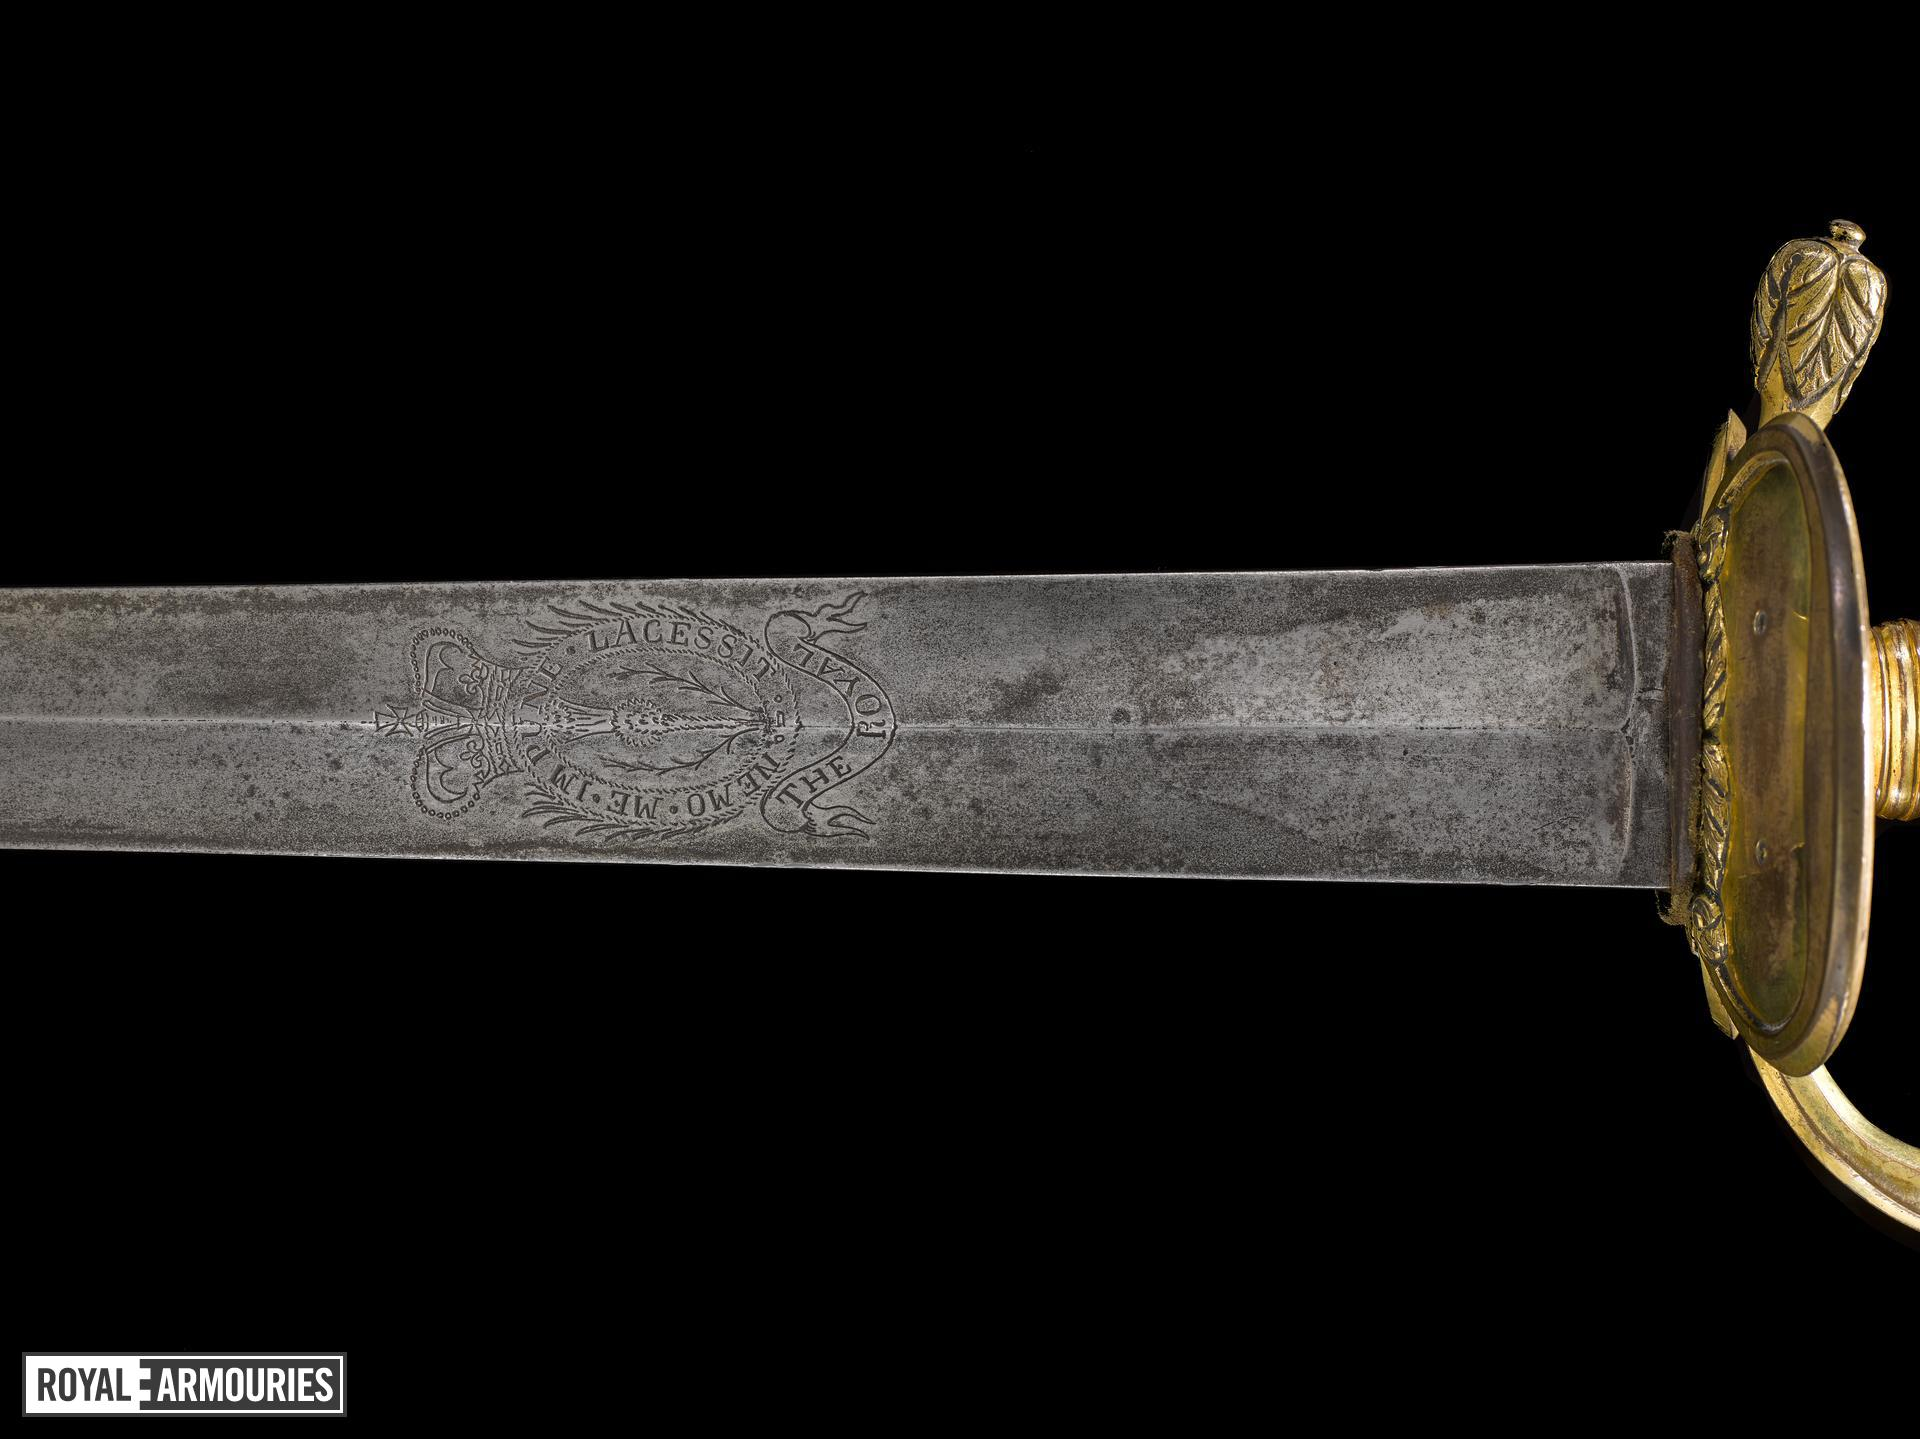 Sword, scabbard and sword-knot, Infantry Officer's sword, Pattern 1796, about 1796, Britain (IX.2033 A-C)